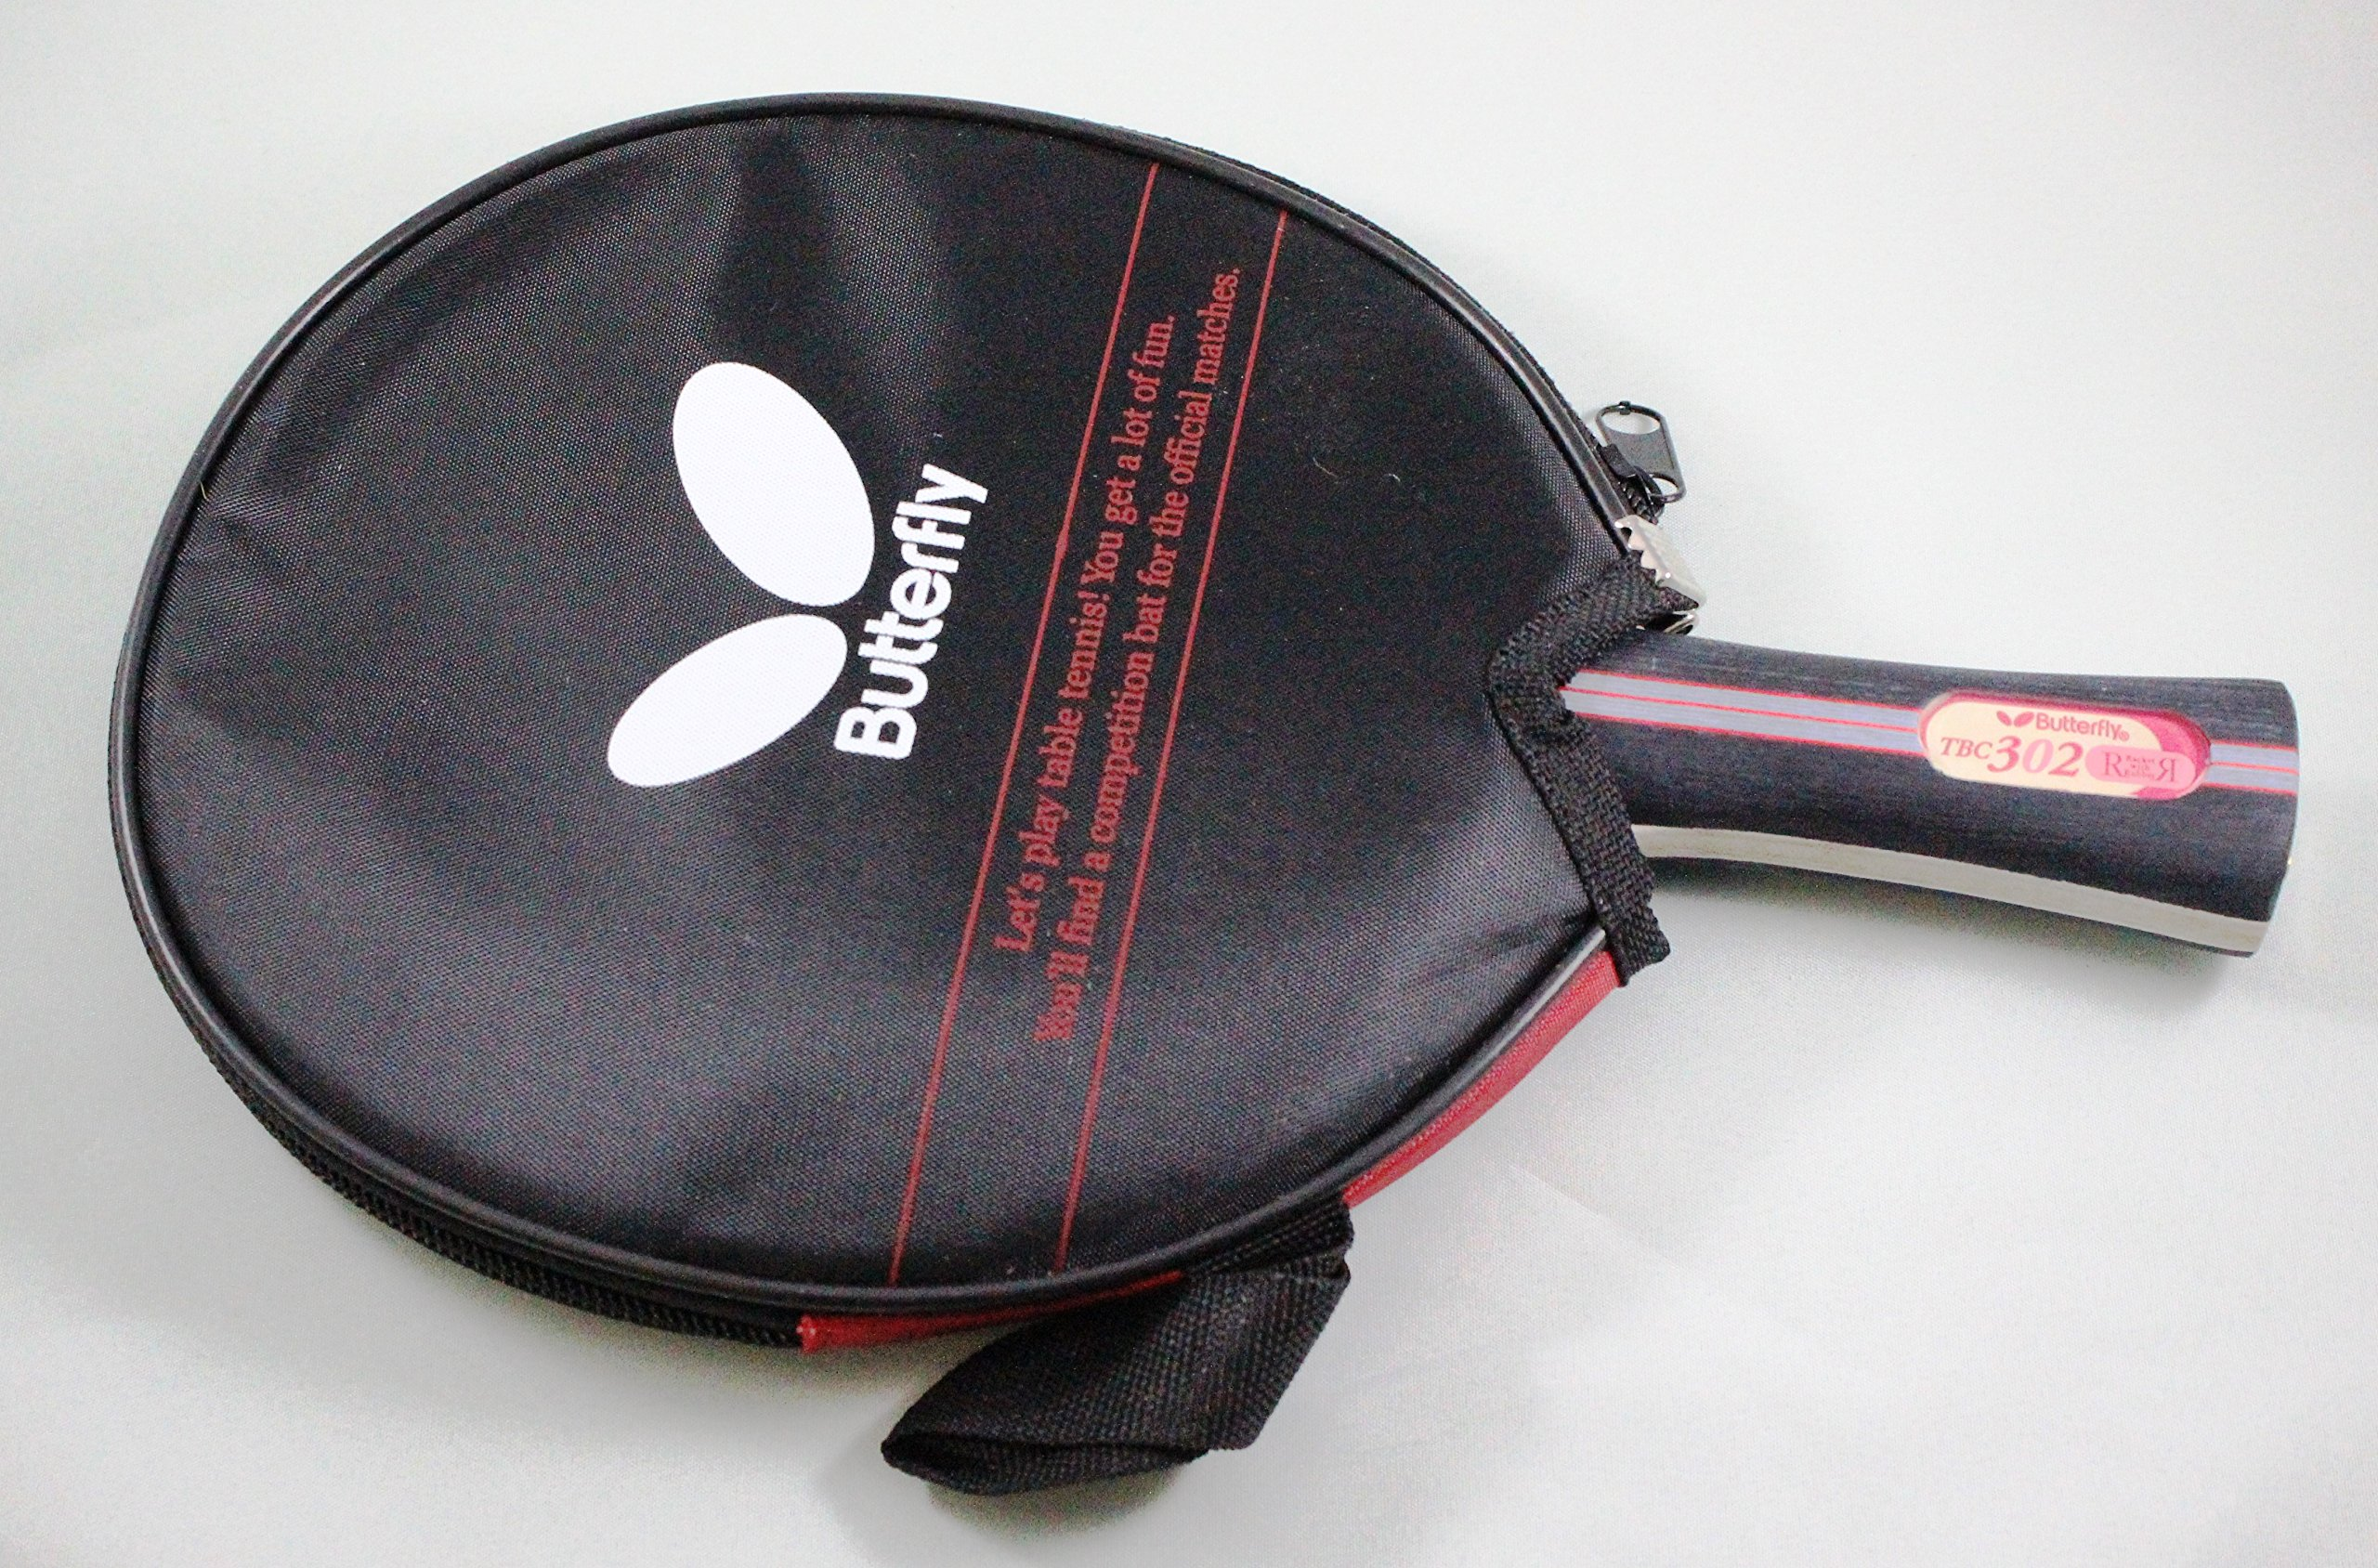 Butterfly 302 Table Tennis Racket Set - 1 Ping Pong Paddle – 1 Ping Pong Paddle Case - Gift Box - ITTF Approved